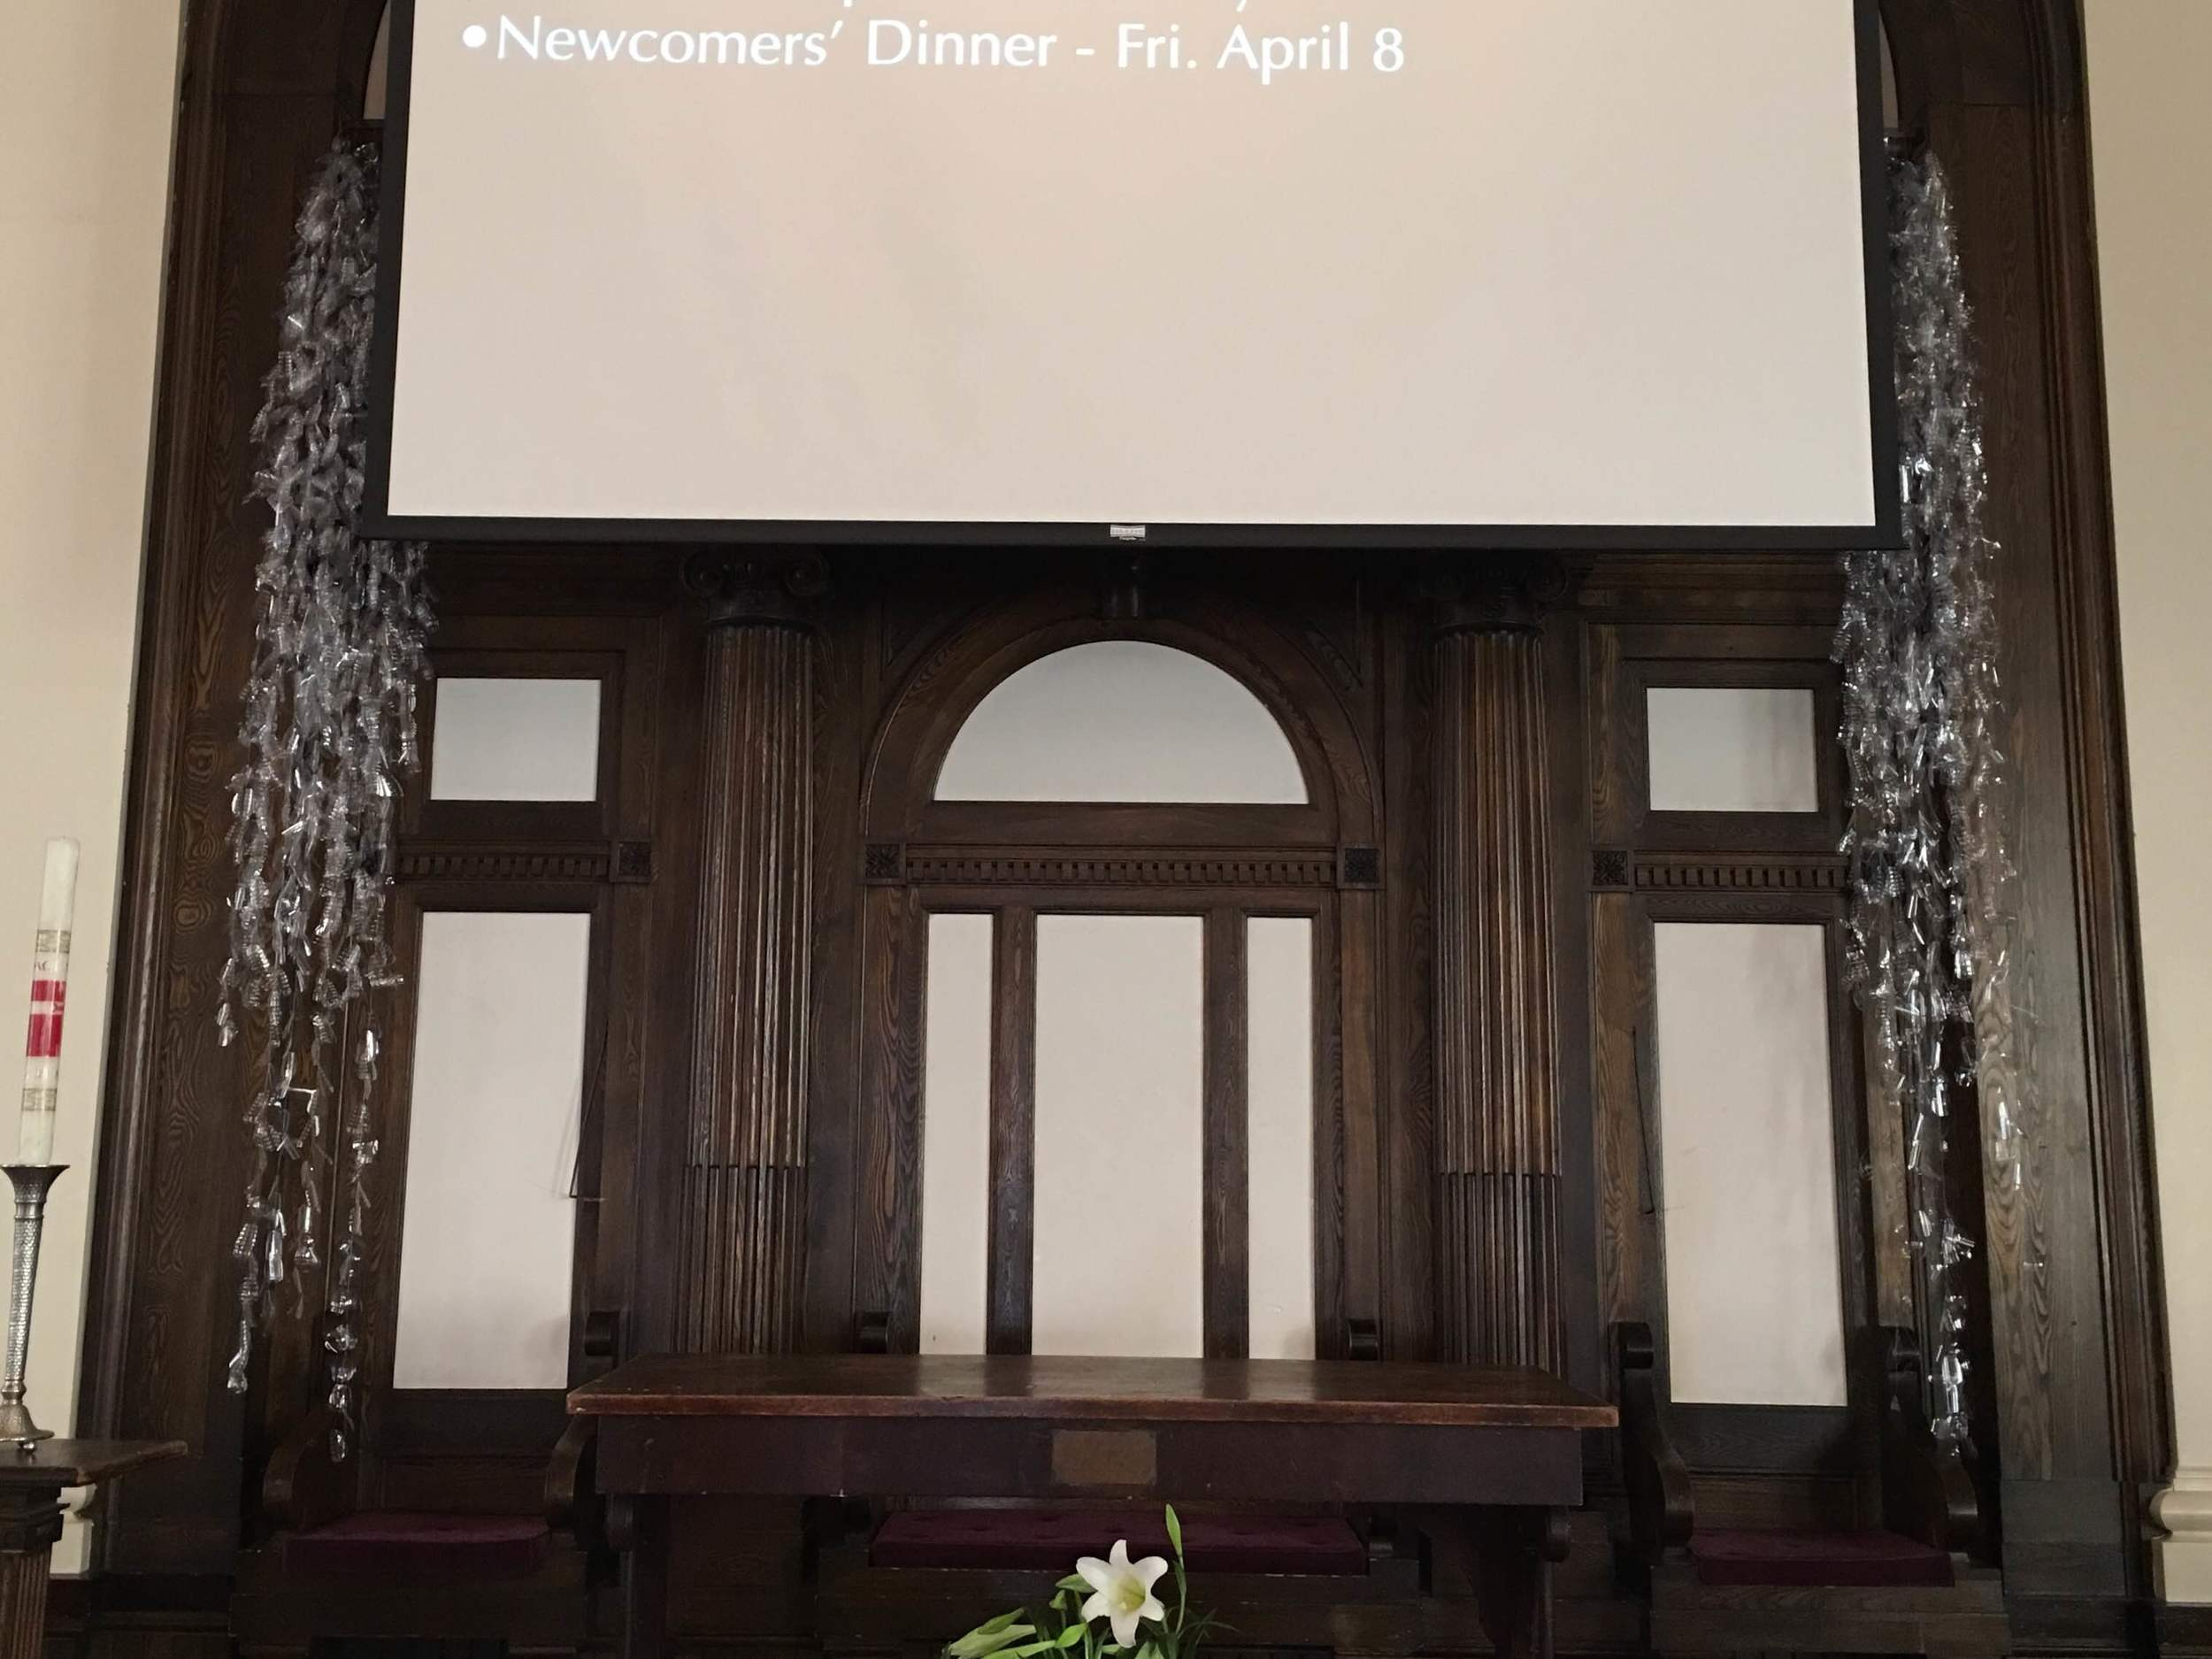 Installation moved to Boston Temple for Easter Sunday Service